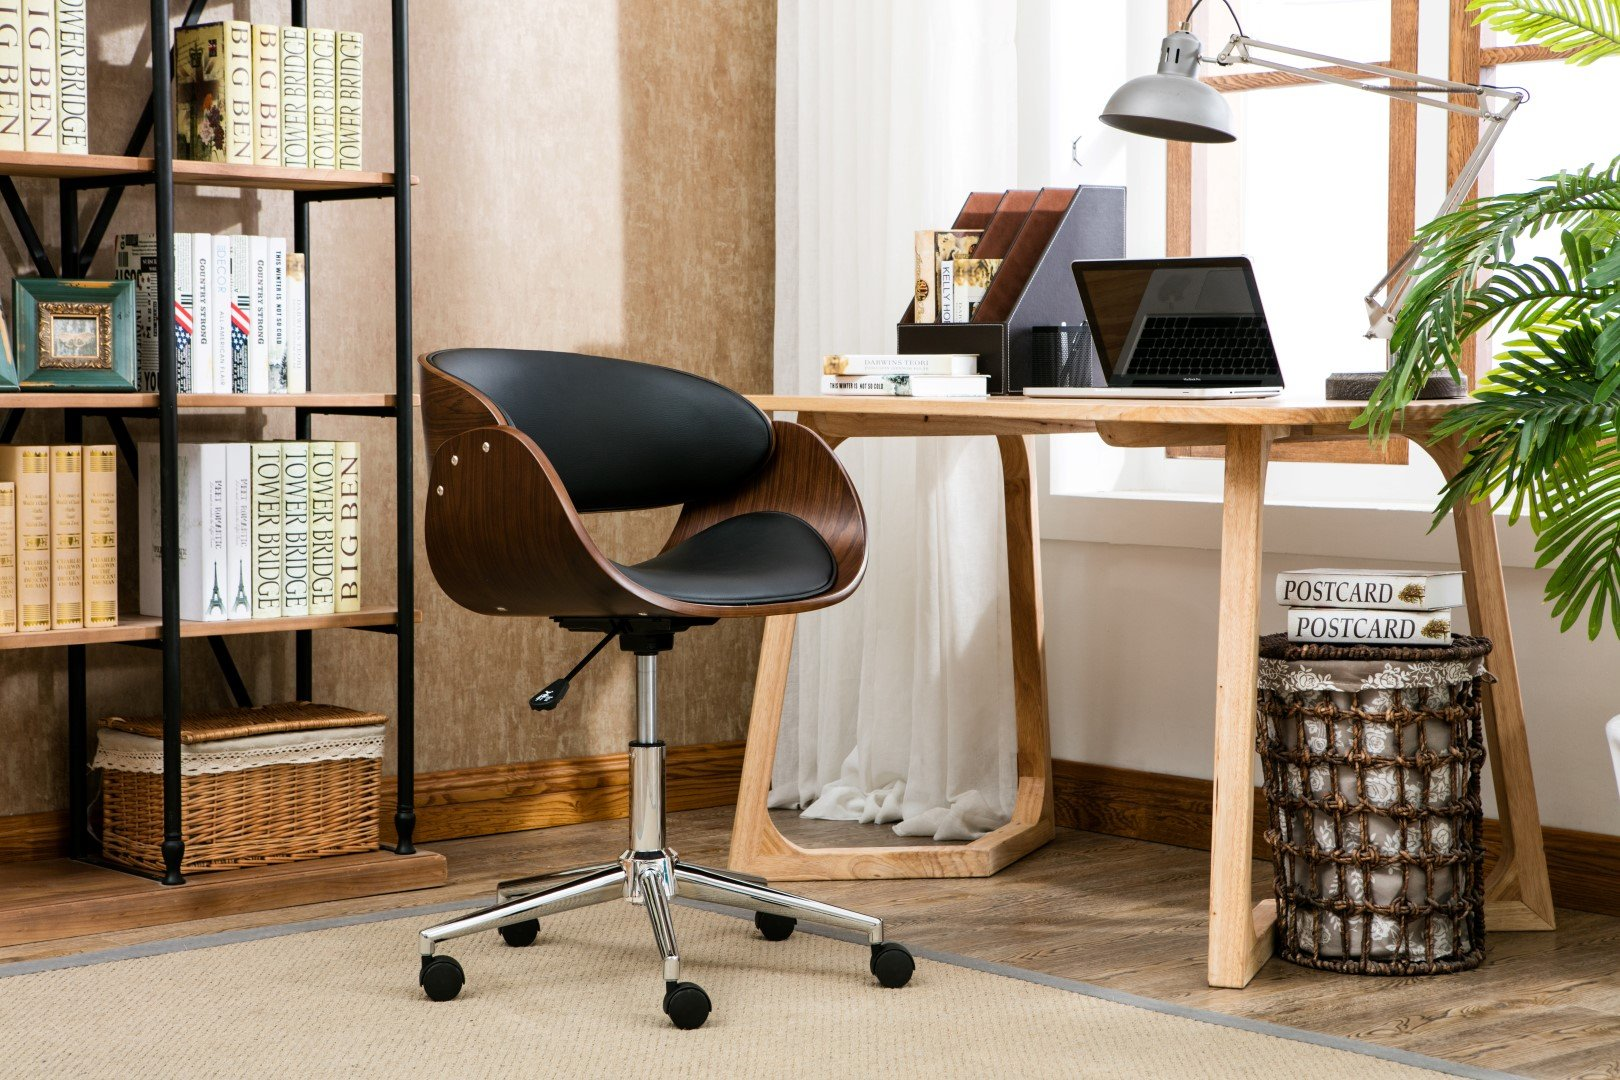 Porthos Home KCH002A BLK Monroe Mid Century Modern Chair with Curved Seat/Back, Leather Upholstery, Adjustable Height, Stainless Steel Legs and 5 Castor Roller Wheels, One Size, Black by Porthos Home